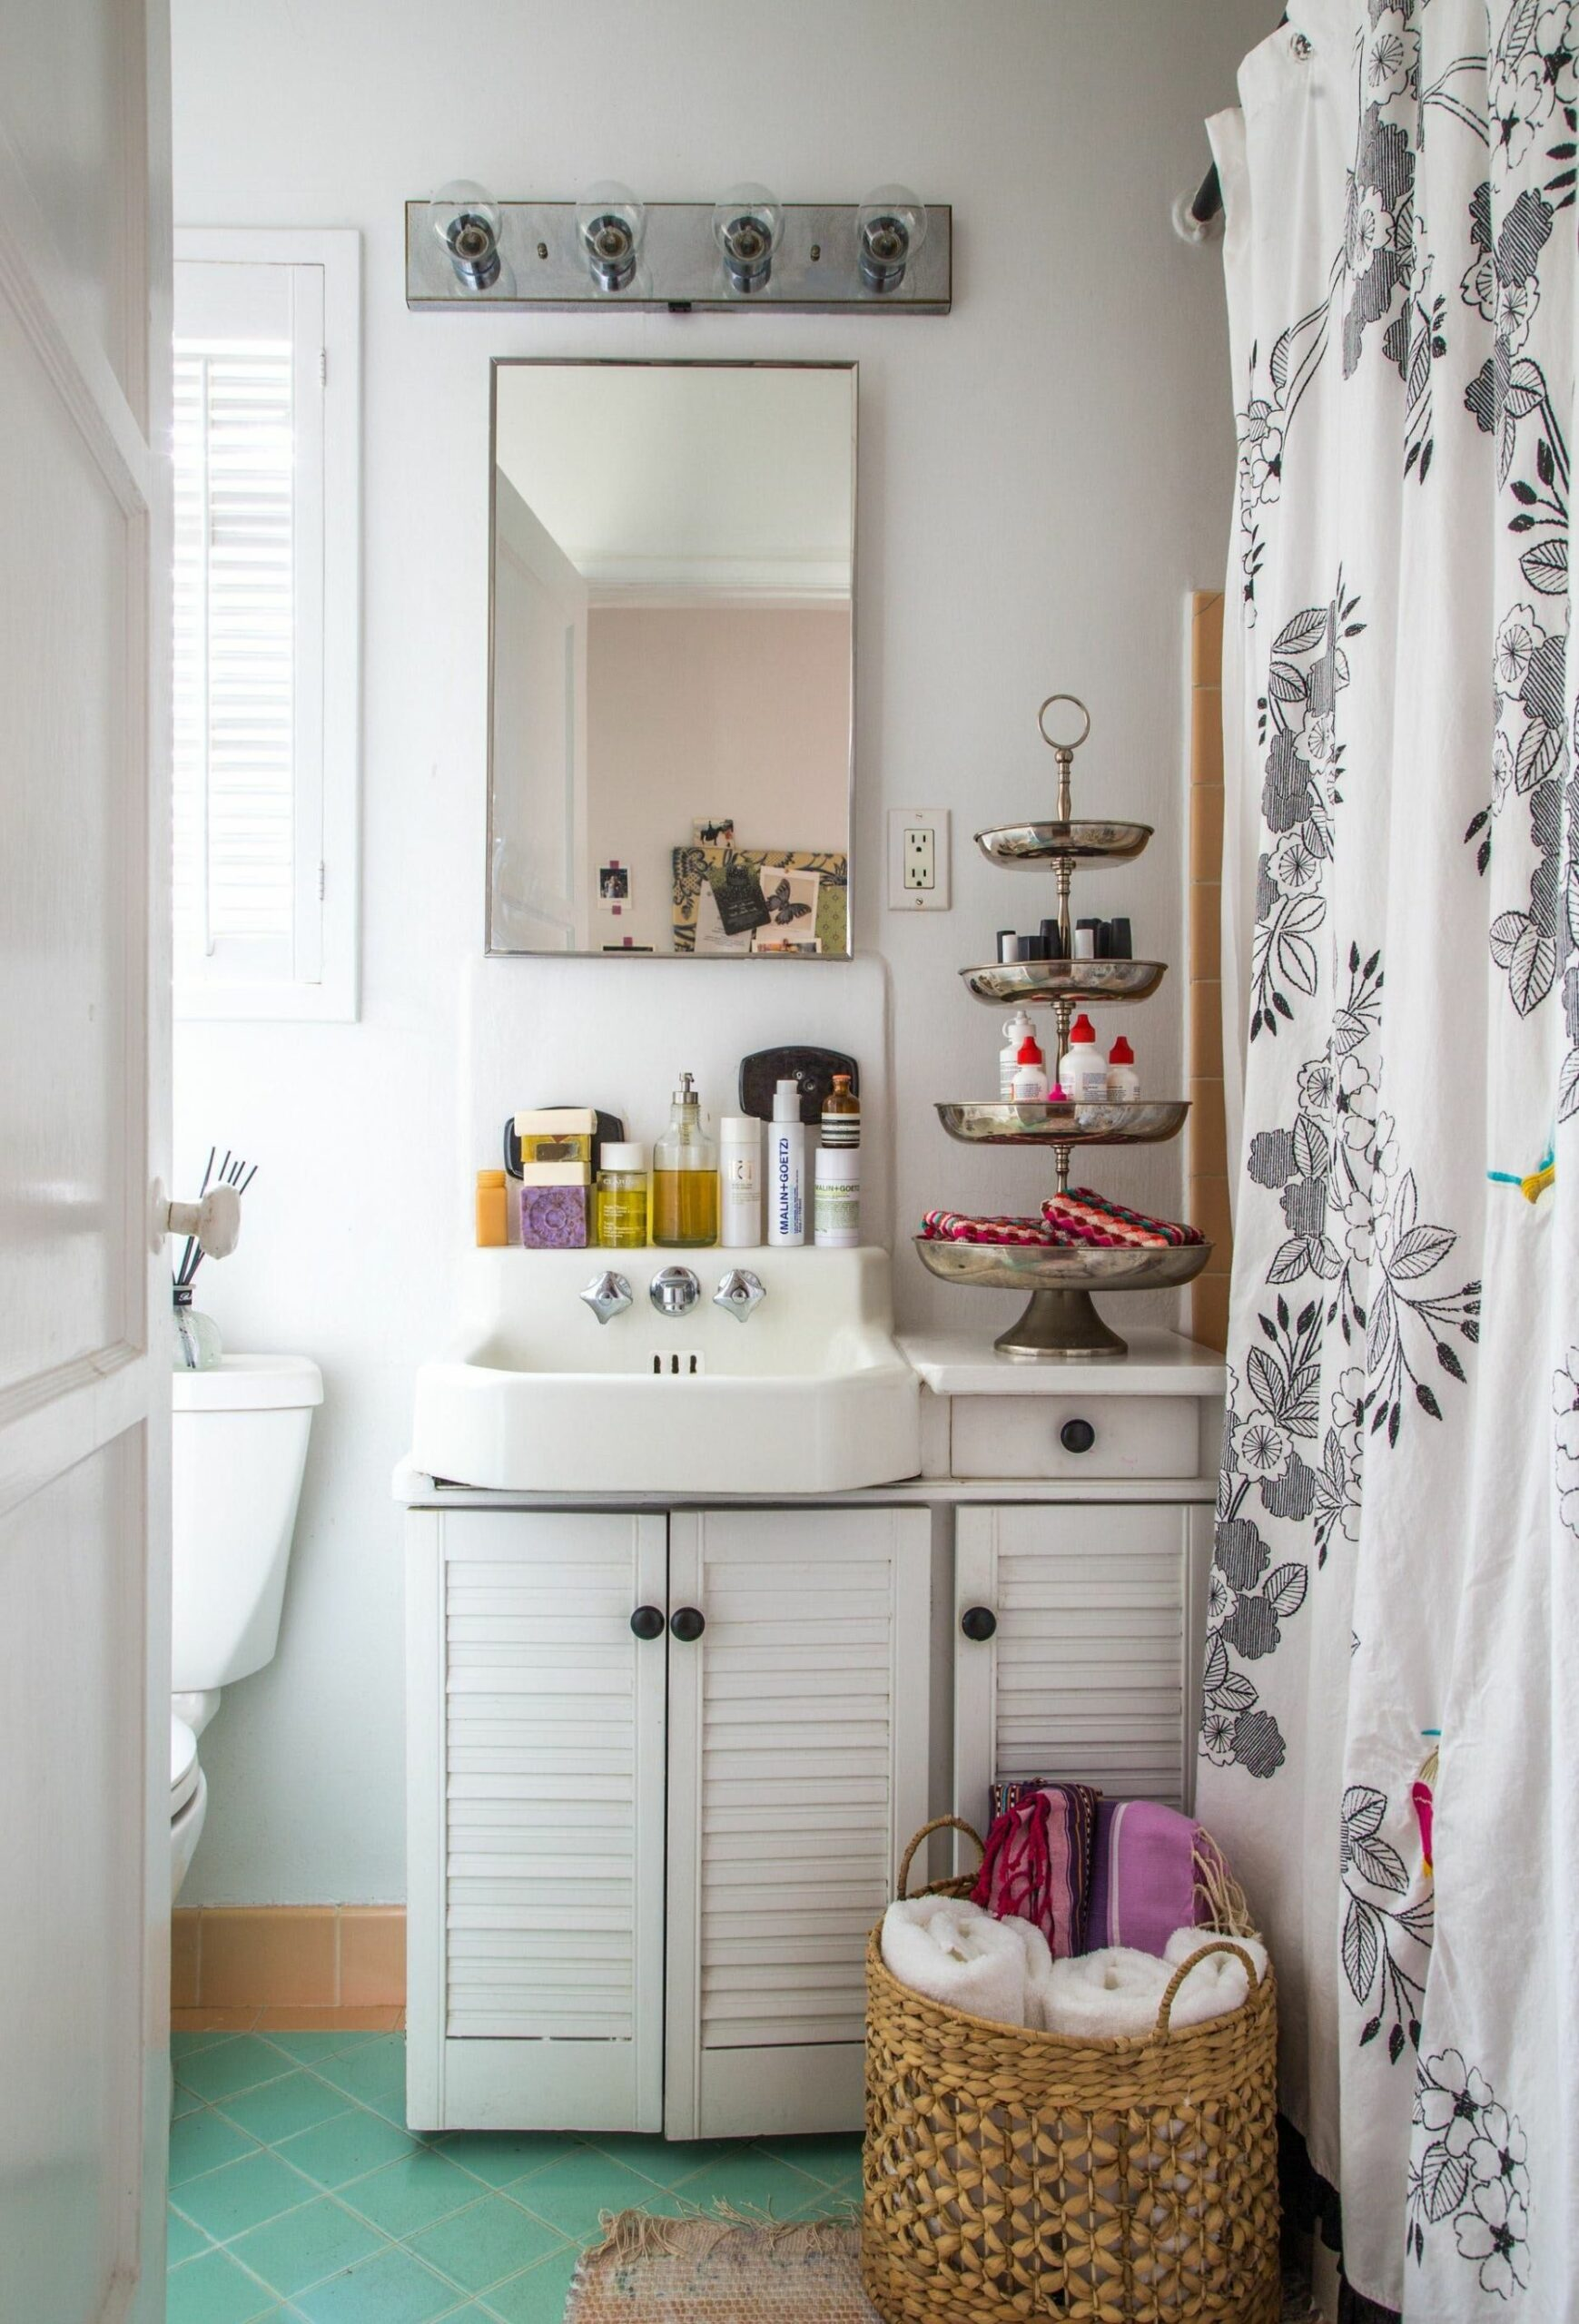 How to Love Your Tiny Rental Bathroom: Styling Ideas from 12 Real ..